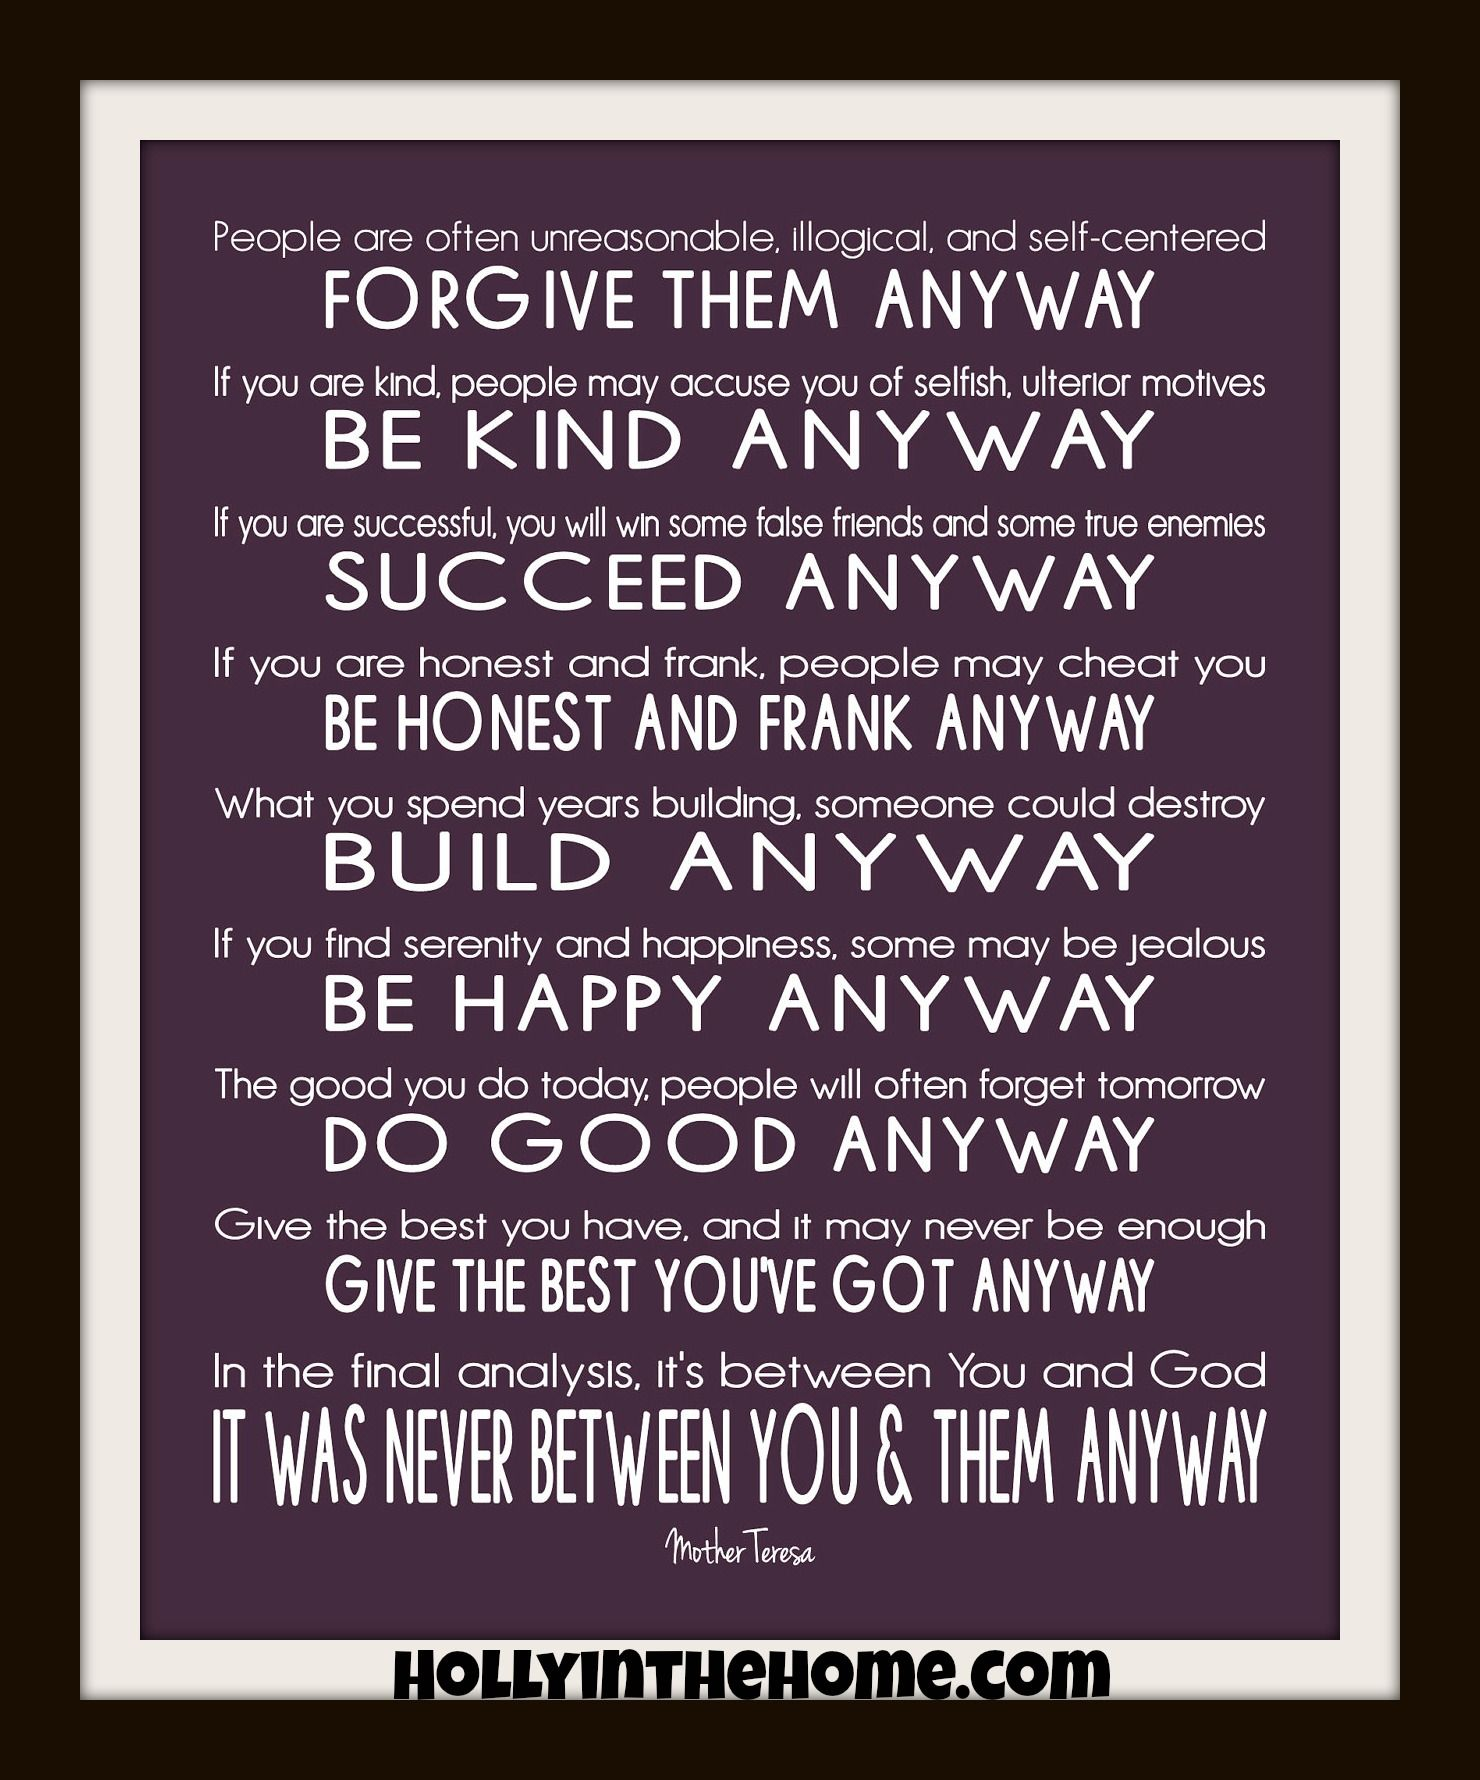 Mother Teresa Quotes Love Them Anyway Do It Any Way Mother Teresa  Do It Anyway  So True And Fantastic